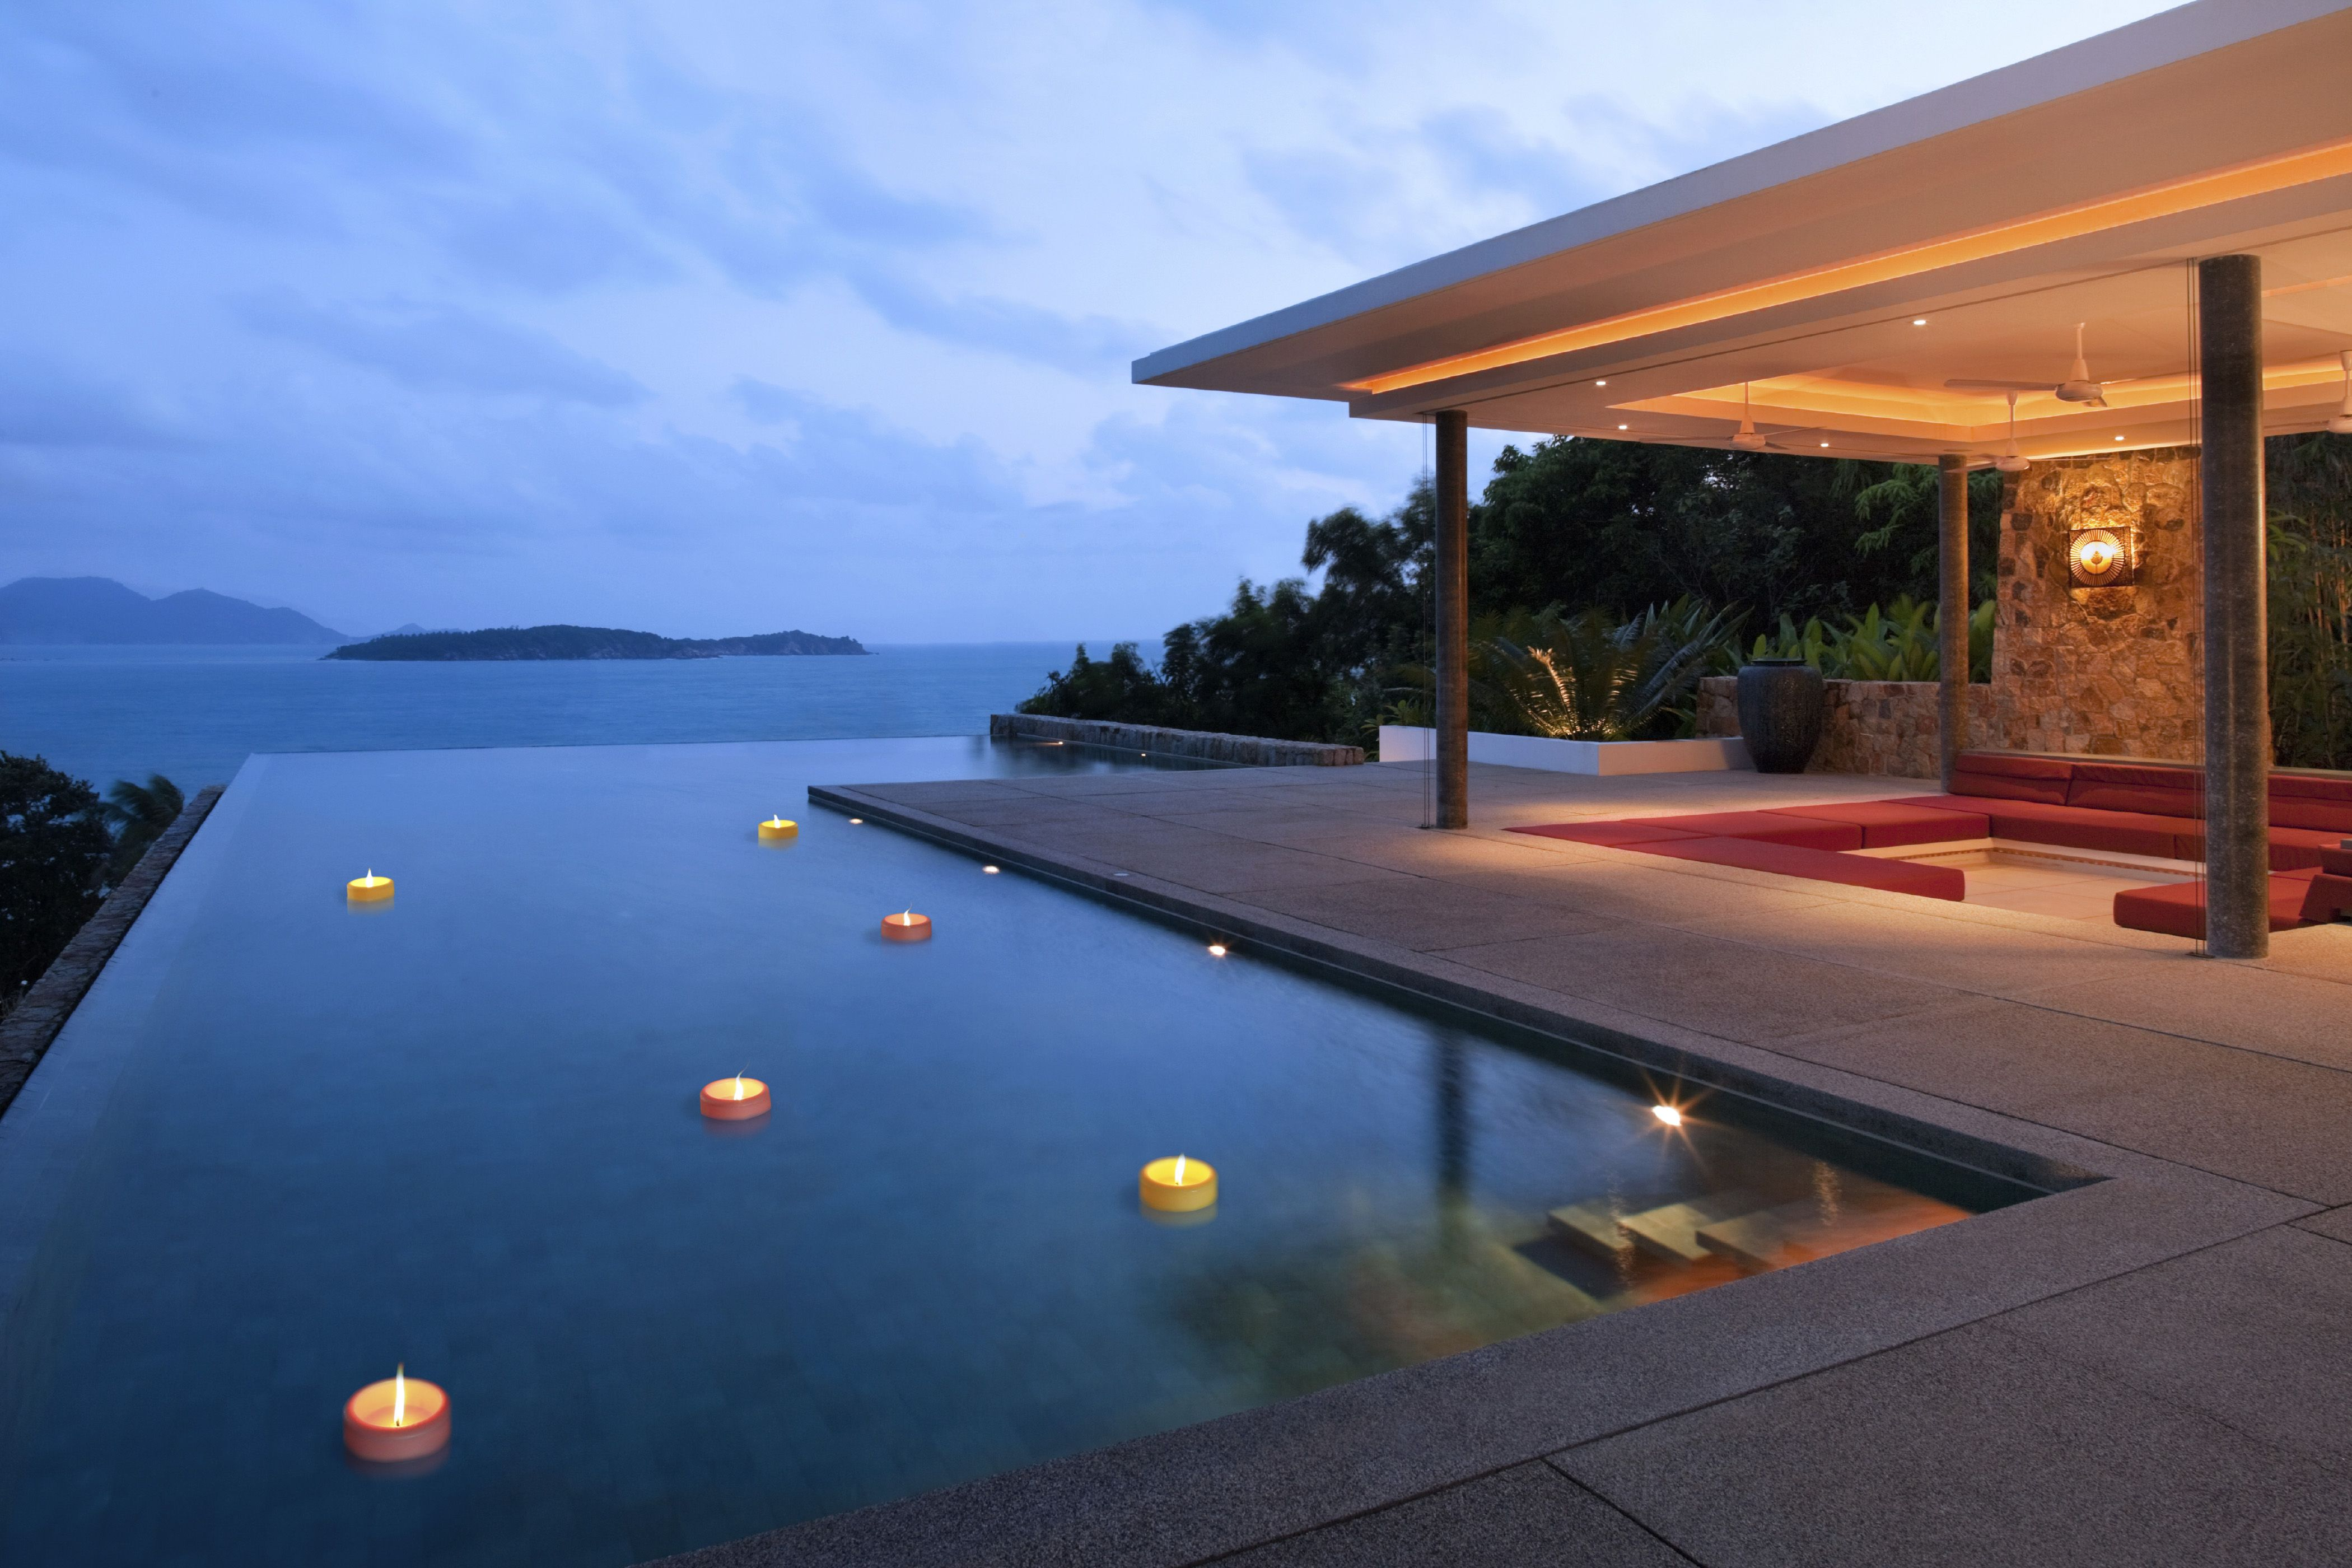 Pool candles home floating candles pool candles for Candele piscina